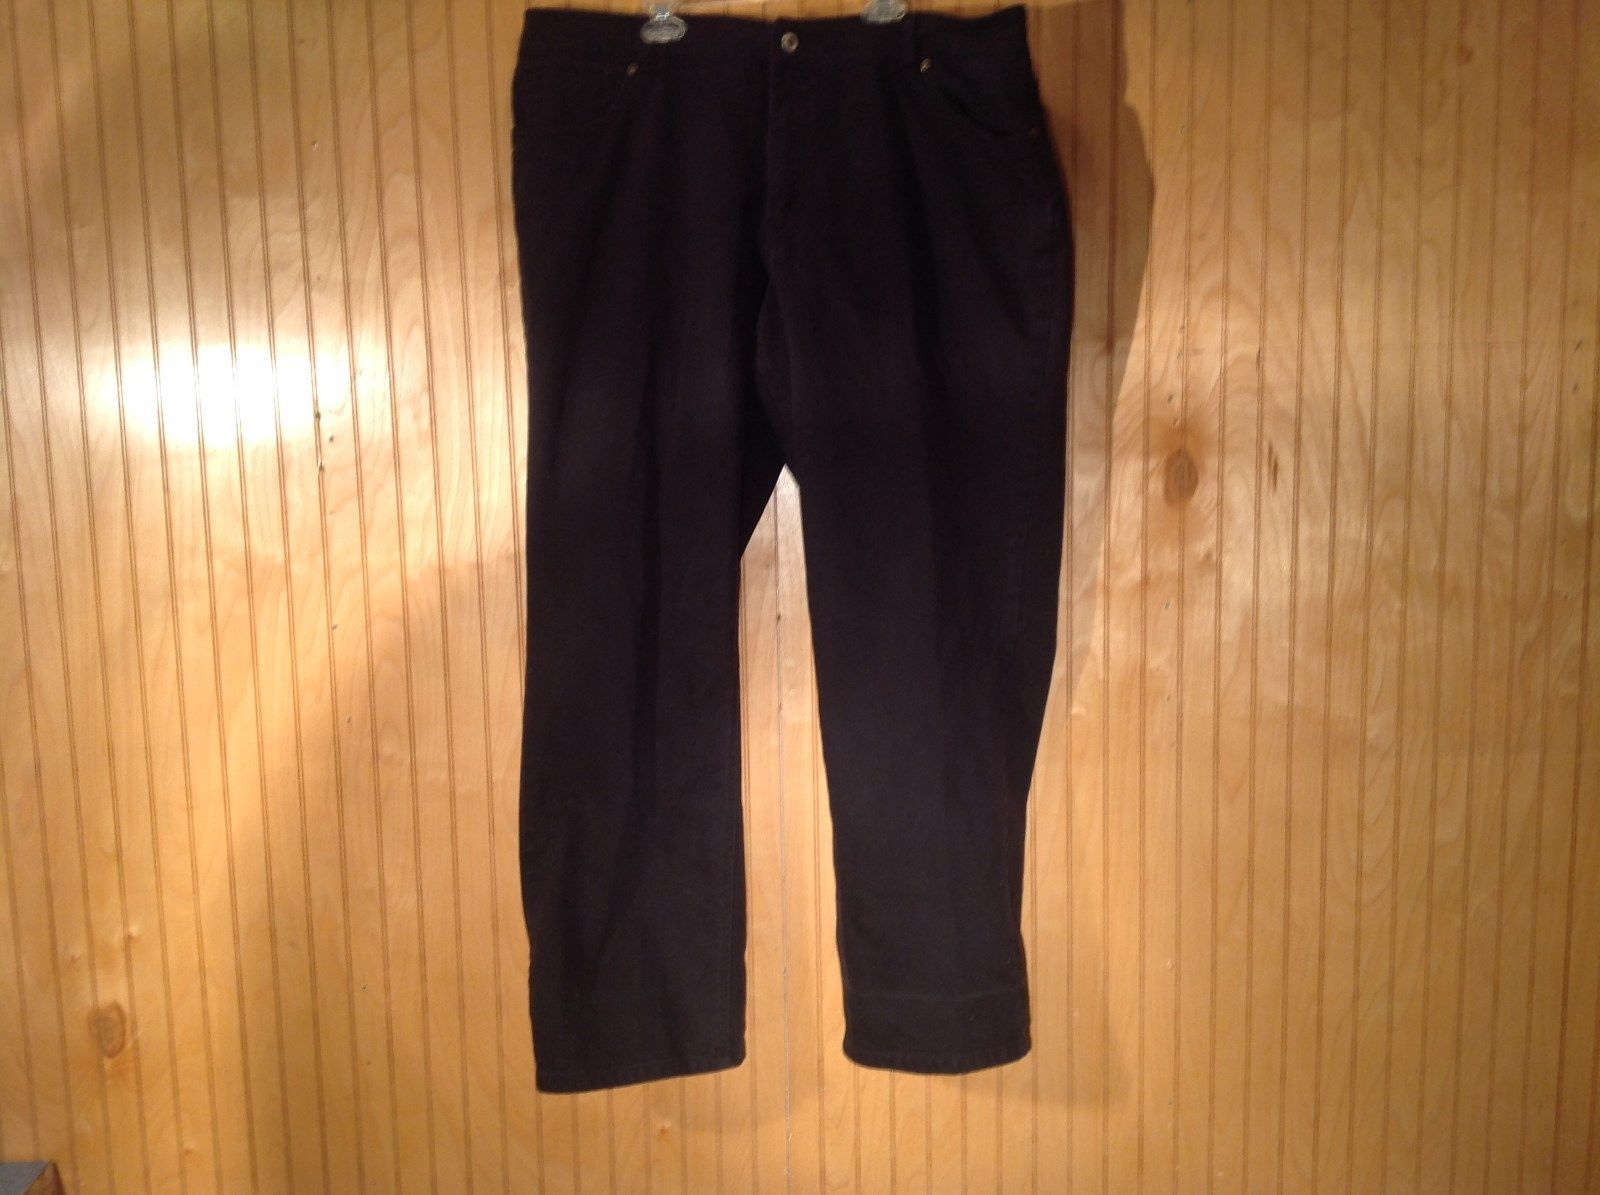 Coldwater Creek Black Jeans Front Back Pockets No Size Tag Measurements Below